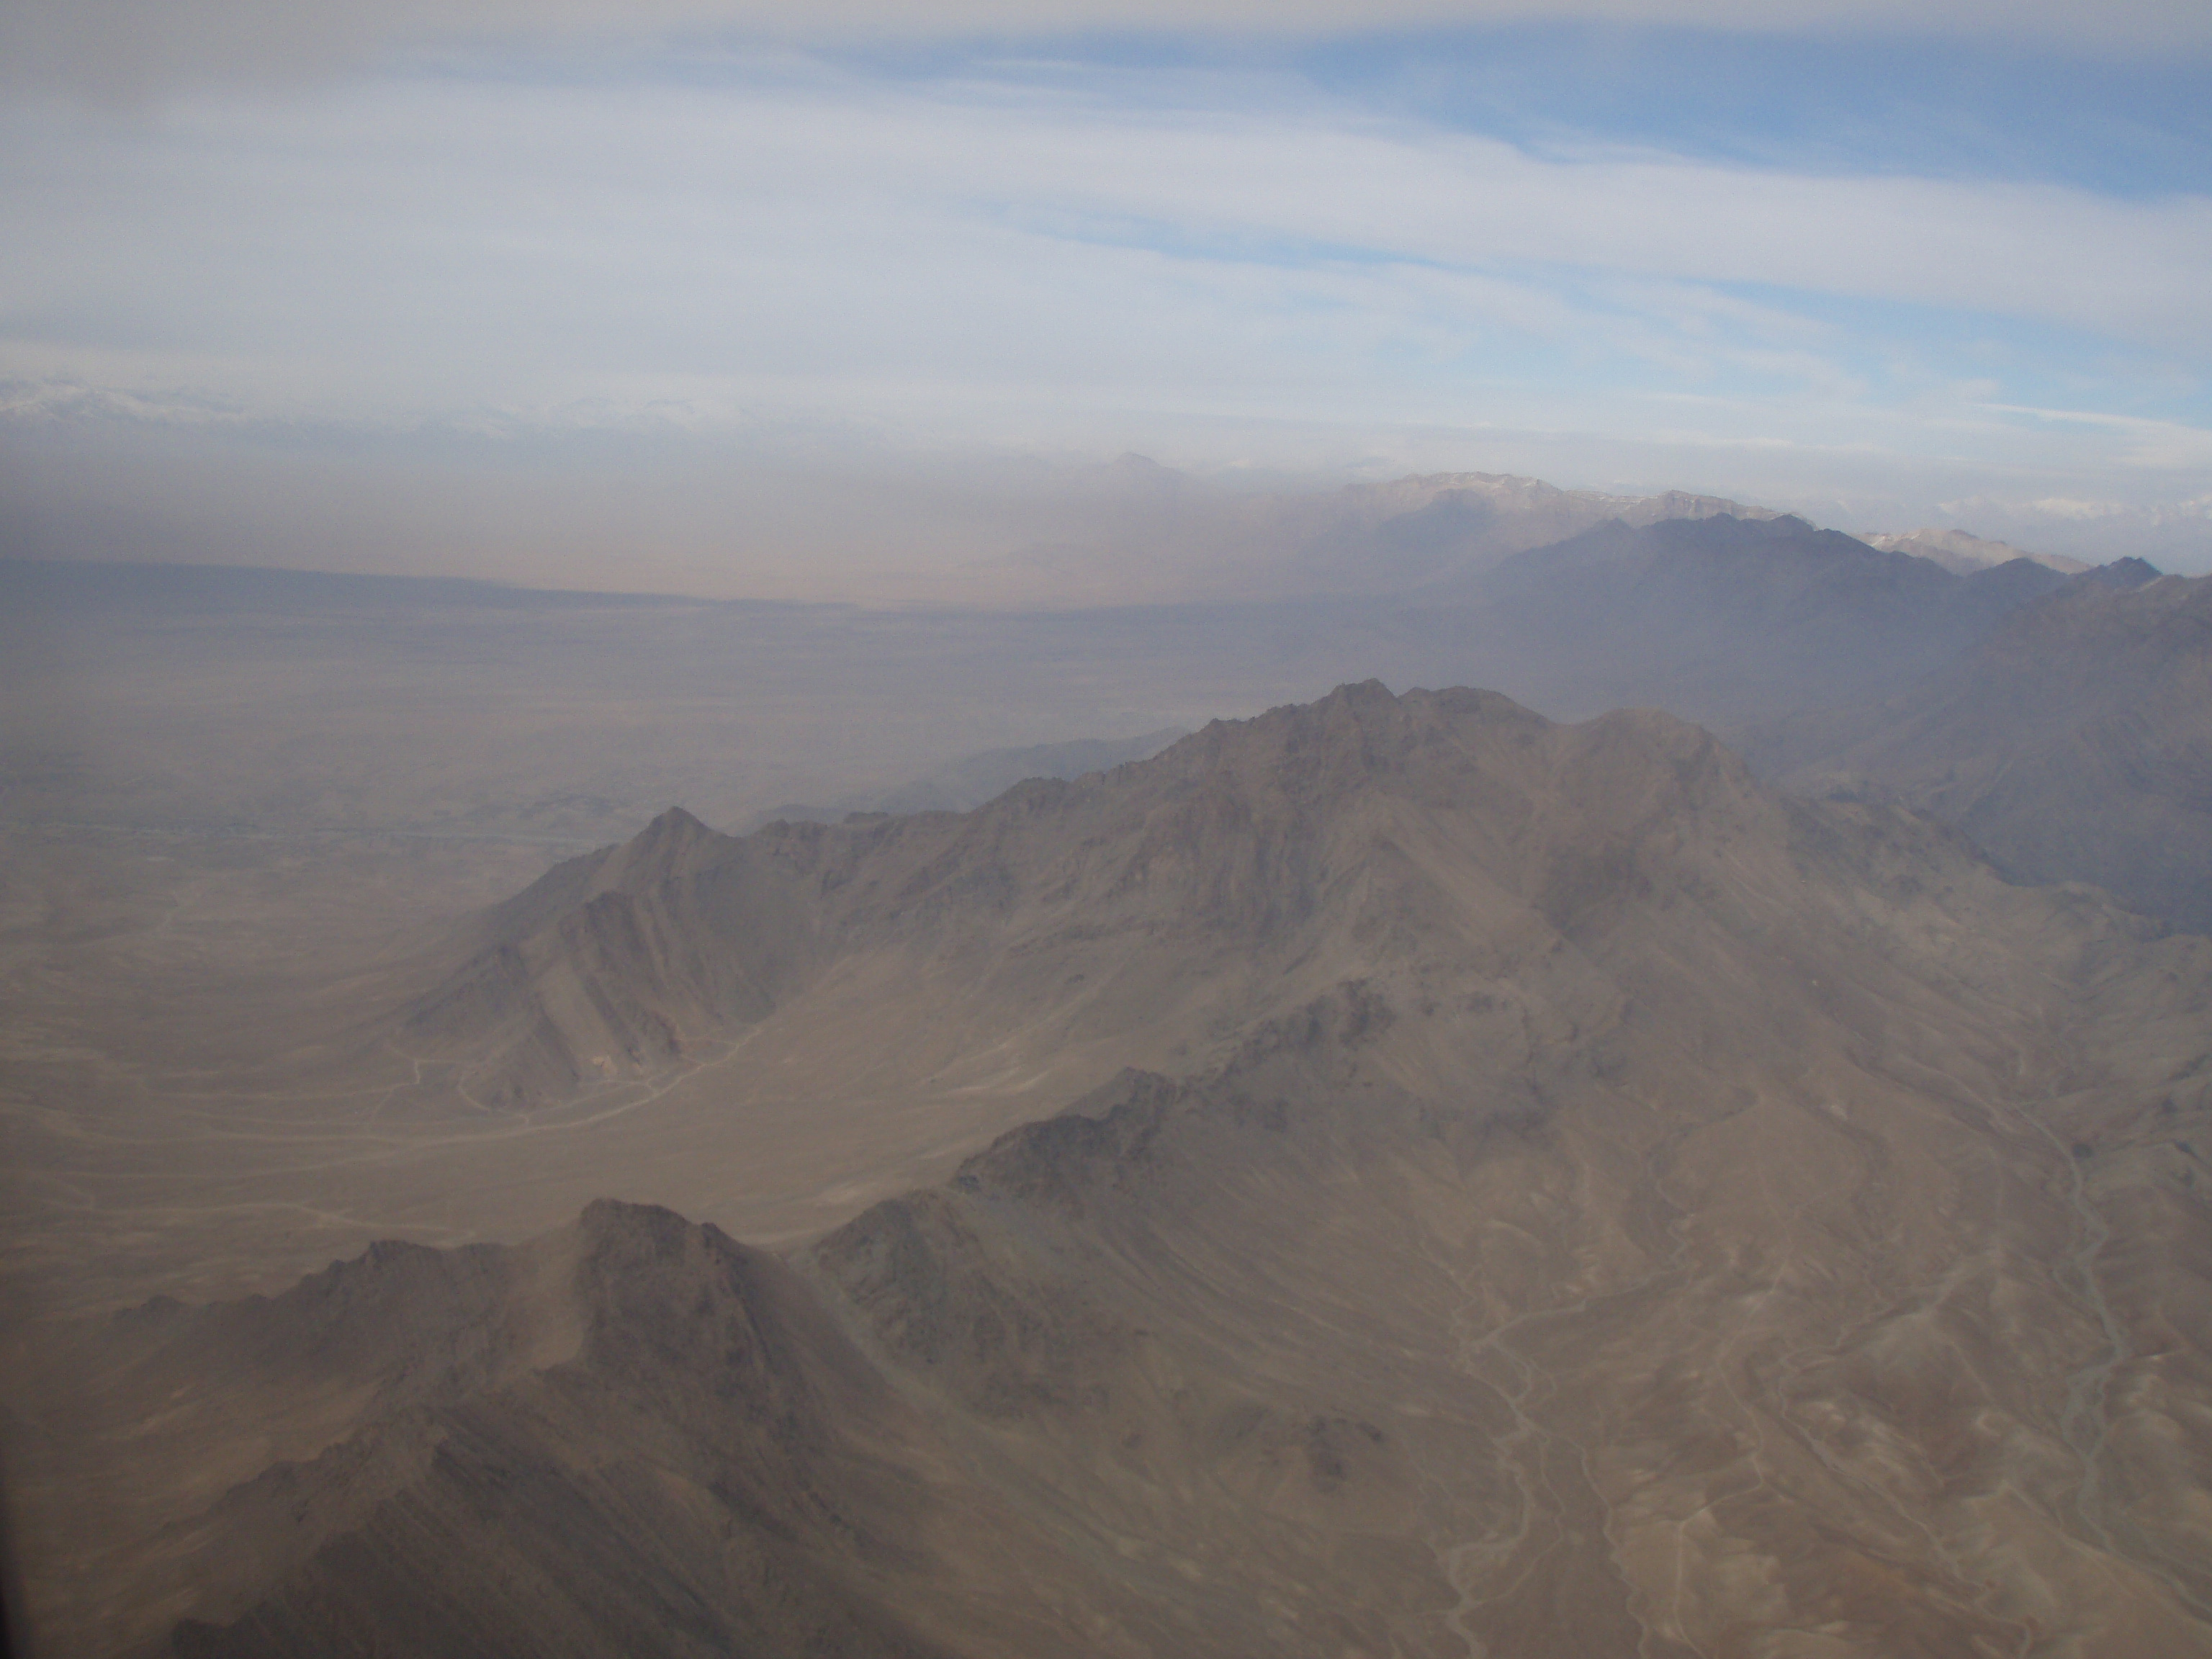 The many mountains in Afghanistan made it easy for the insurgents to hide. Feyzabad, northern Afghanistan. Photo: HOK – the soldiers' photos, 2008